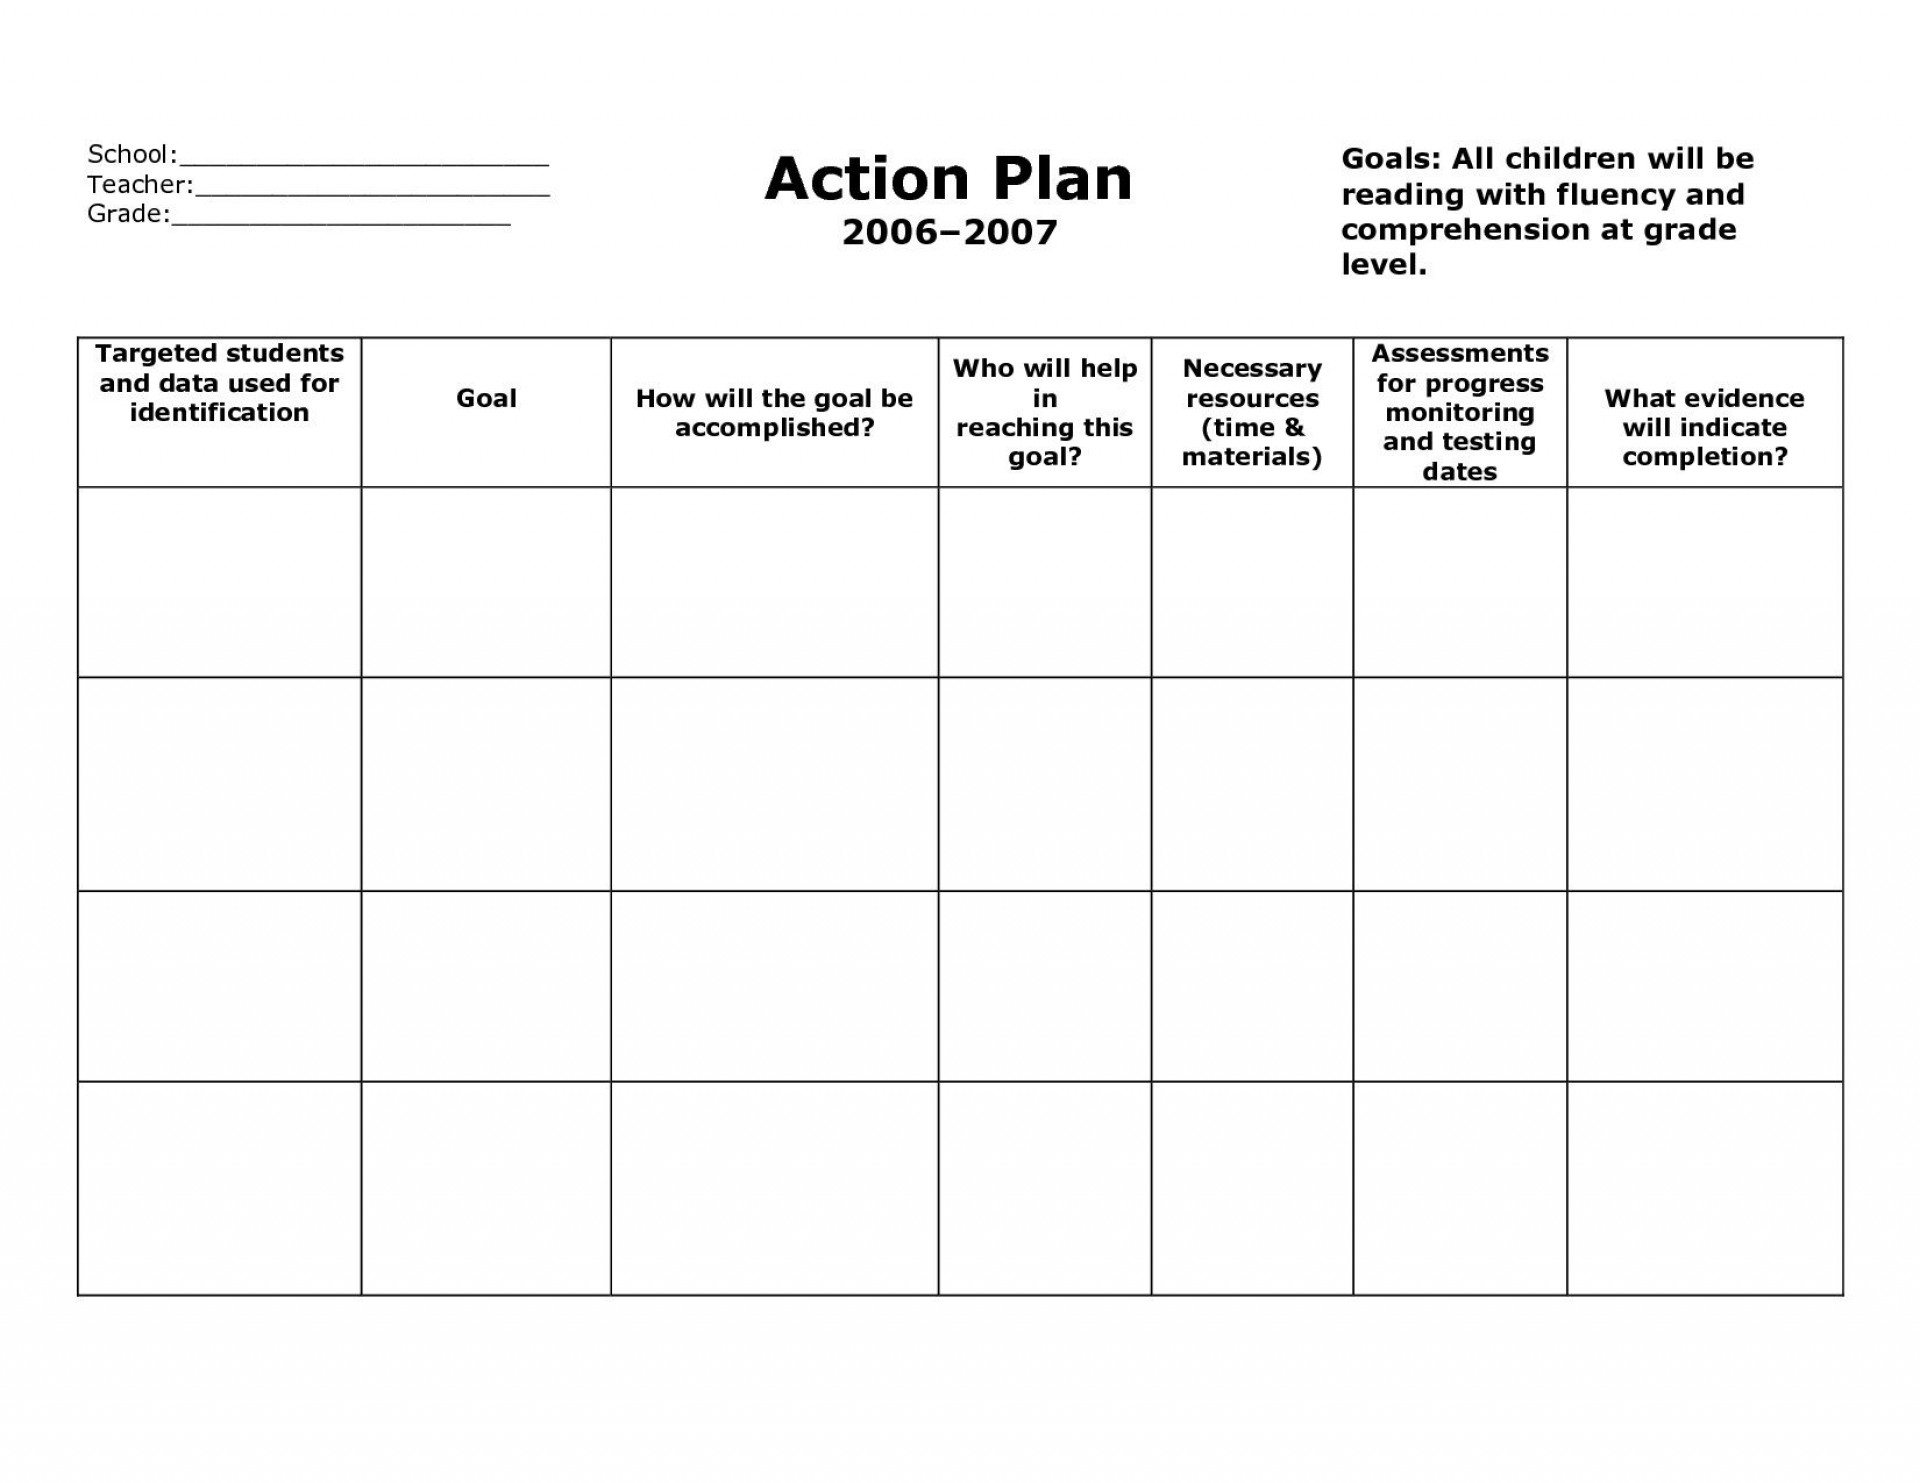 007 Stupendou School Improvement Planning Template Image  Templates Plan Sample Deped 2016 Example South Africa1920